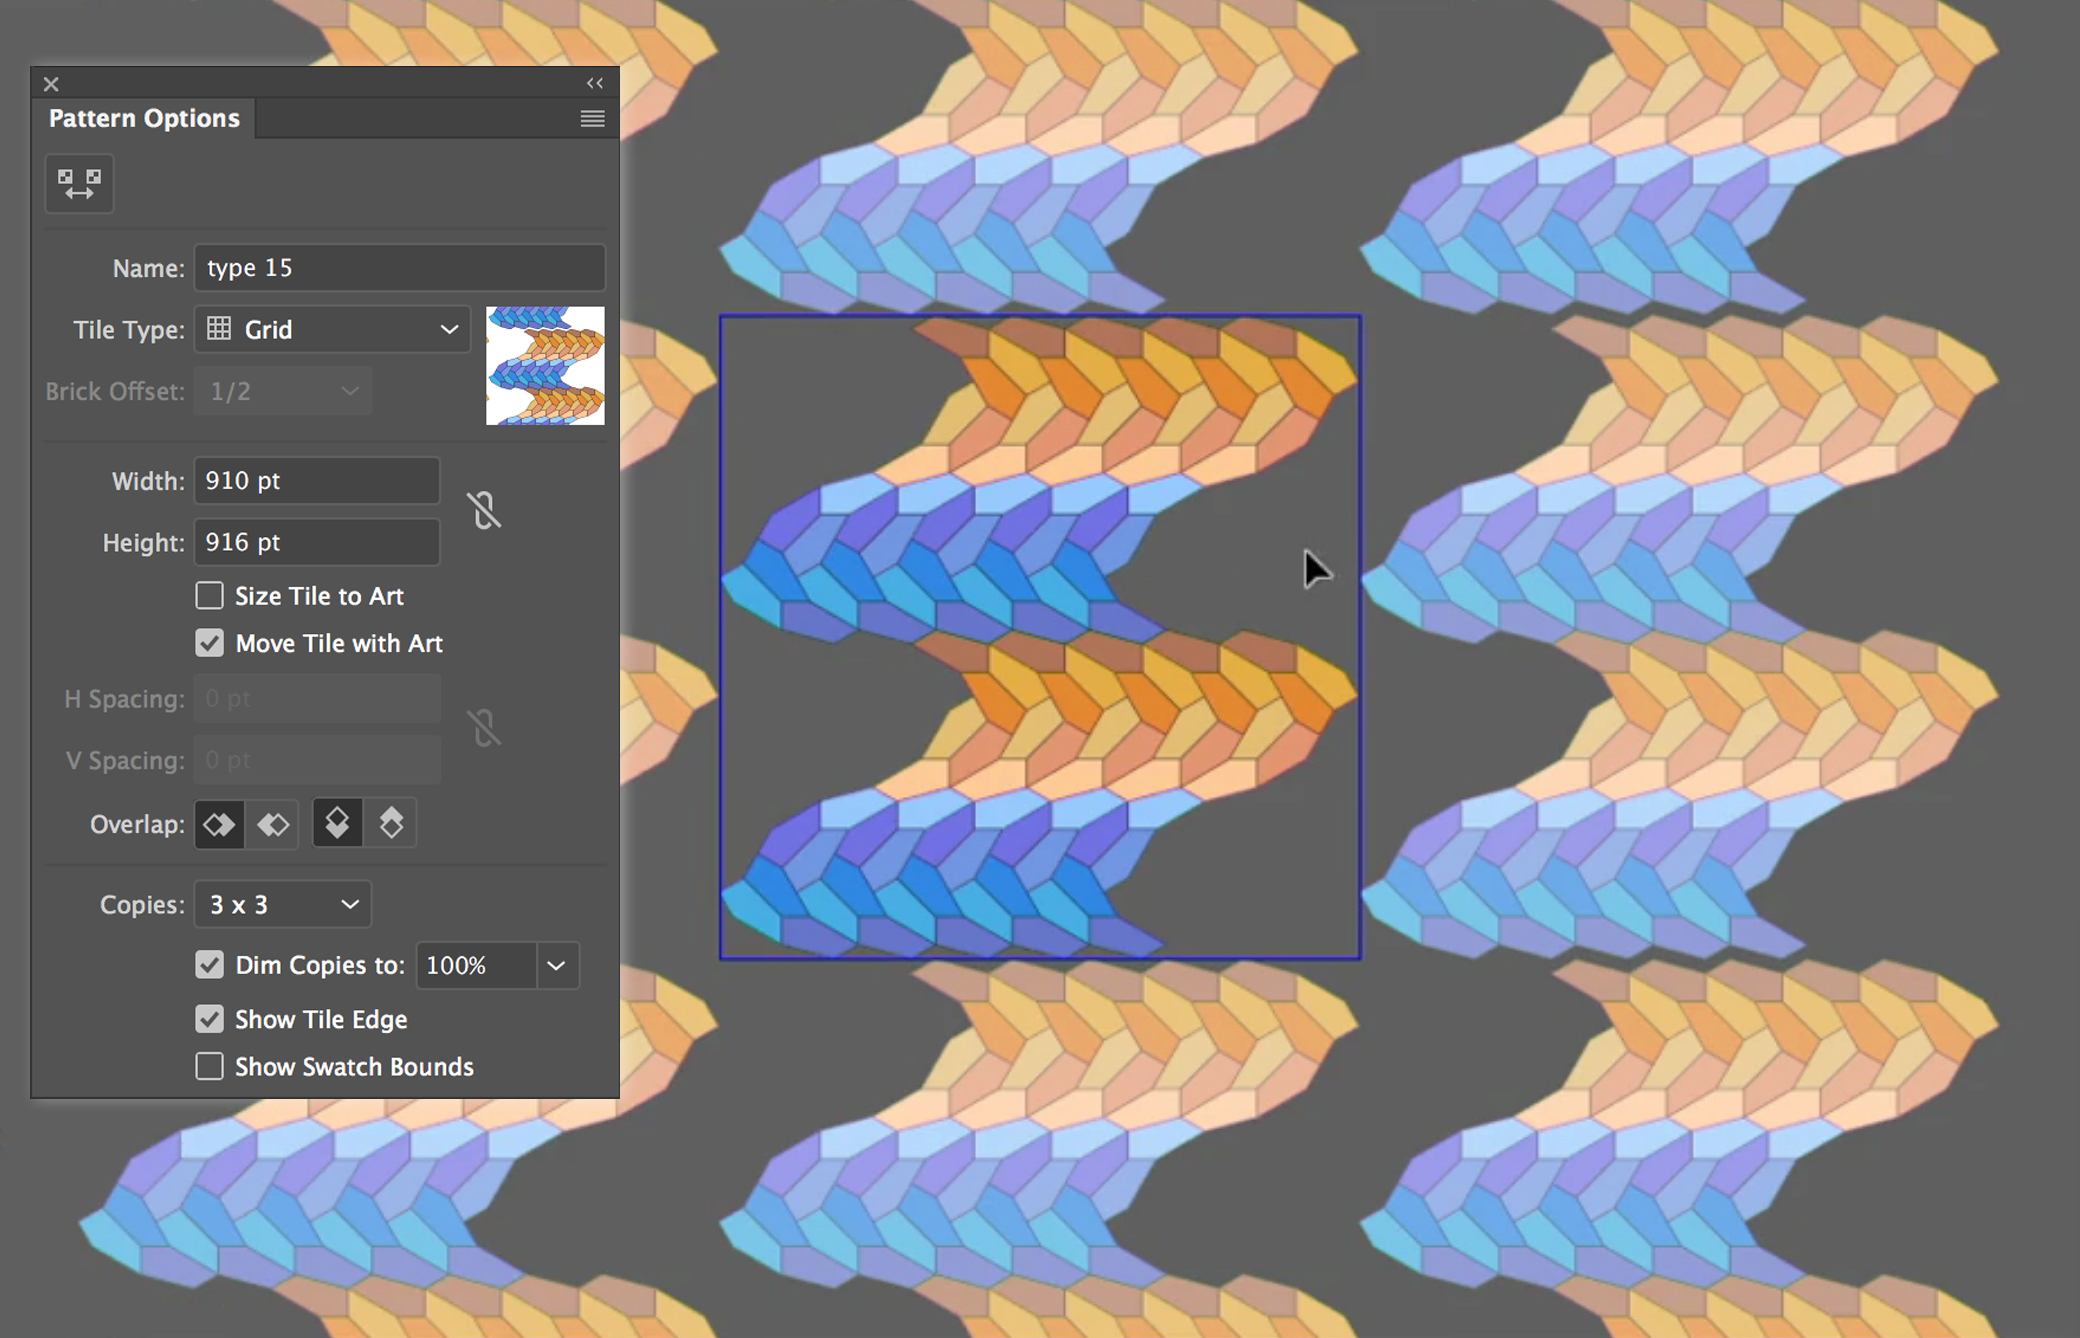 Using the Pattern Options dialog box in Adobe Illustrator